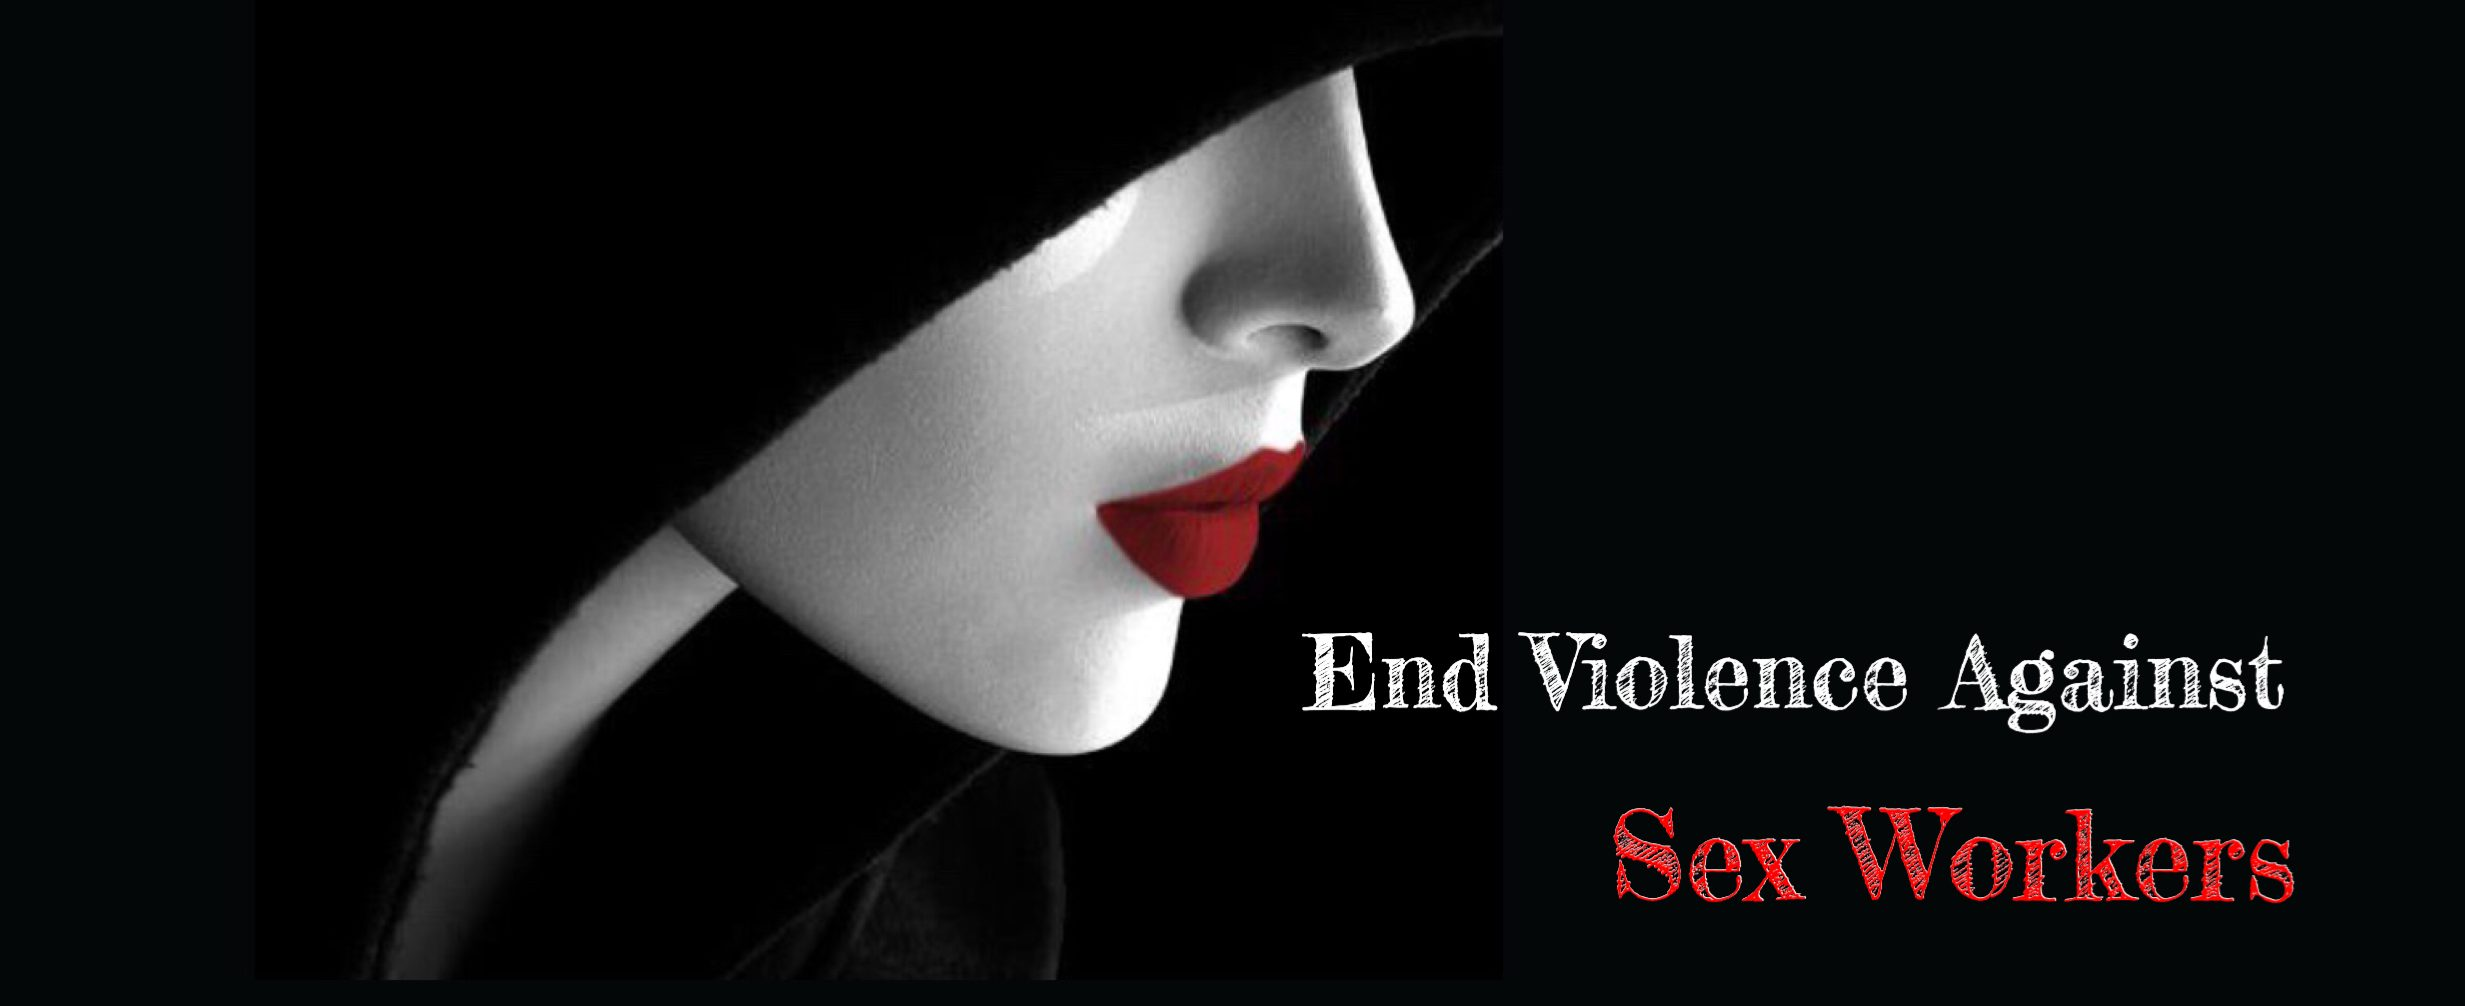 End Violence Against Sex Workers 2017: Unity in Our Community